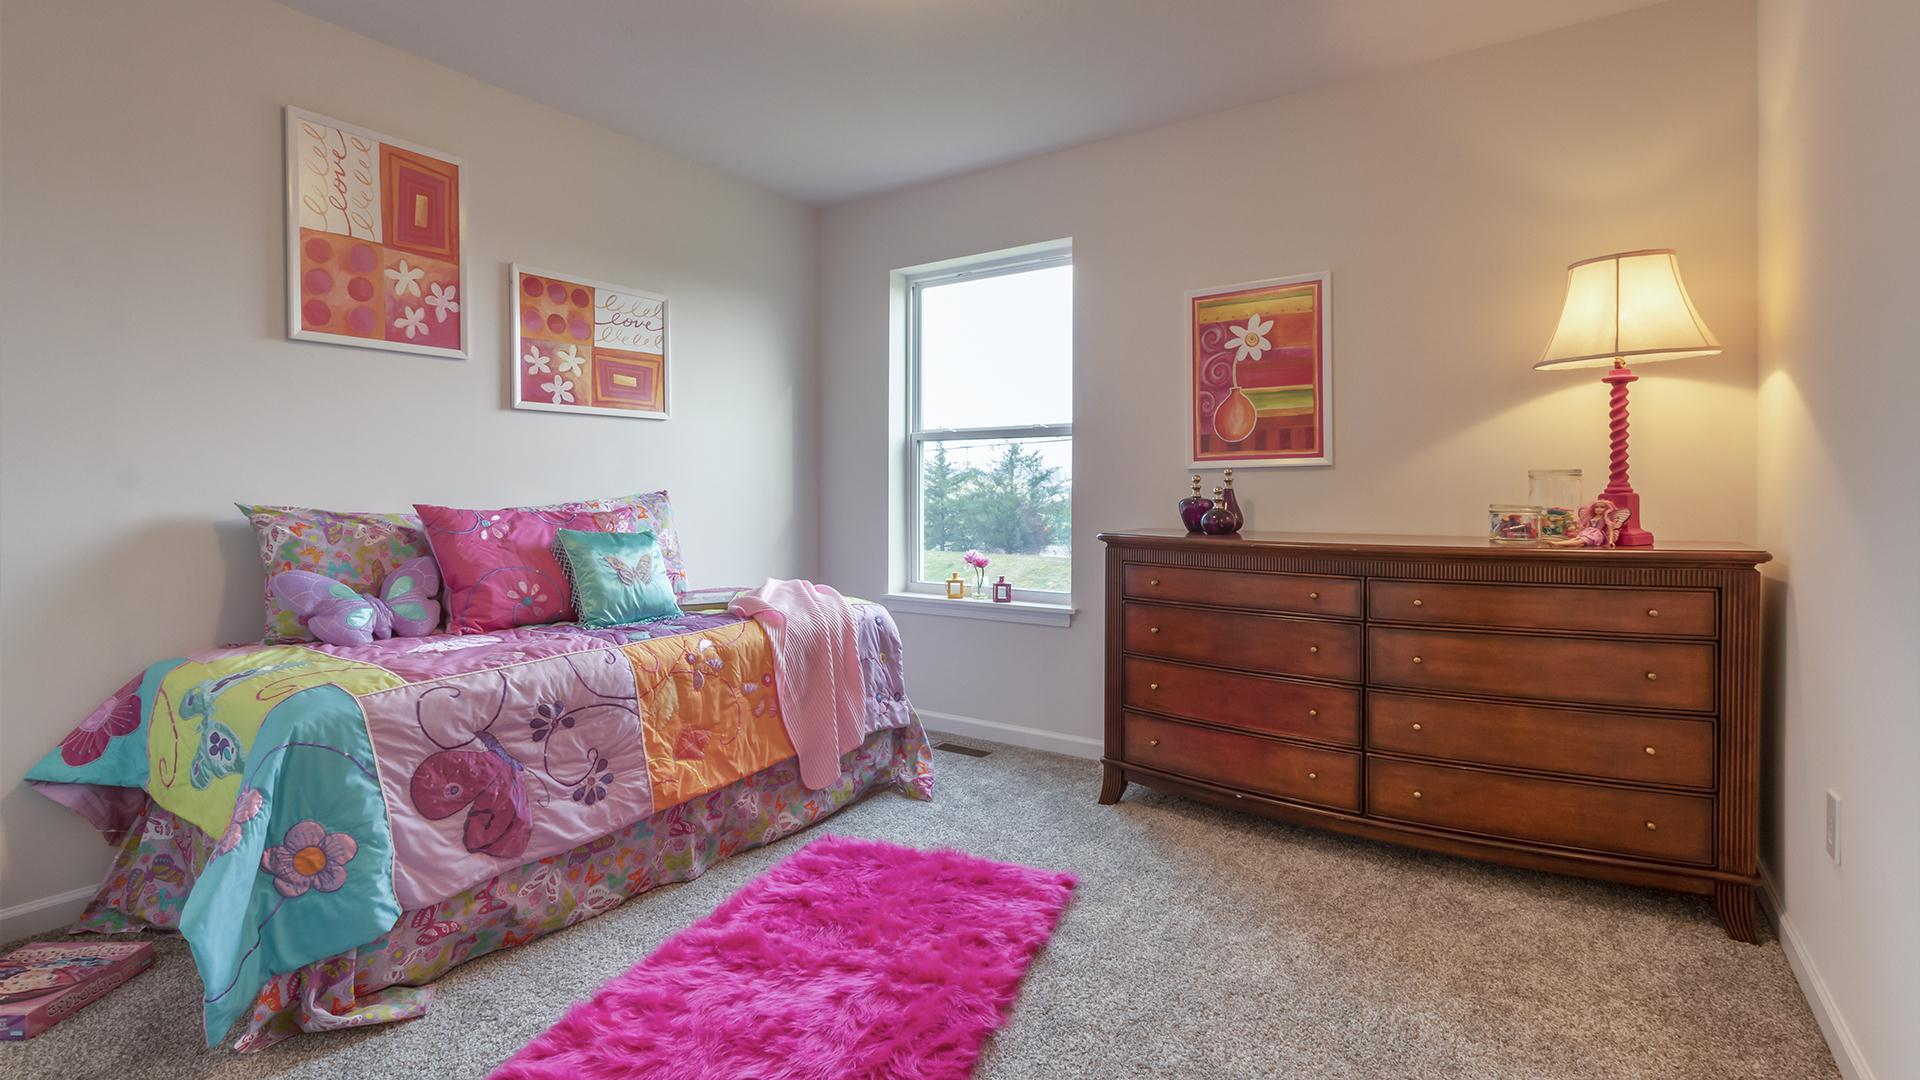 Bedroom featured in the Rosewood By S & A Homes in Altoona, PA